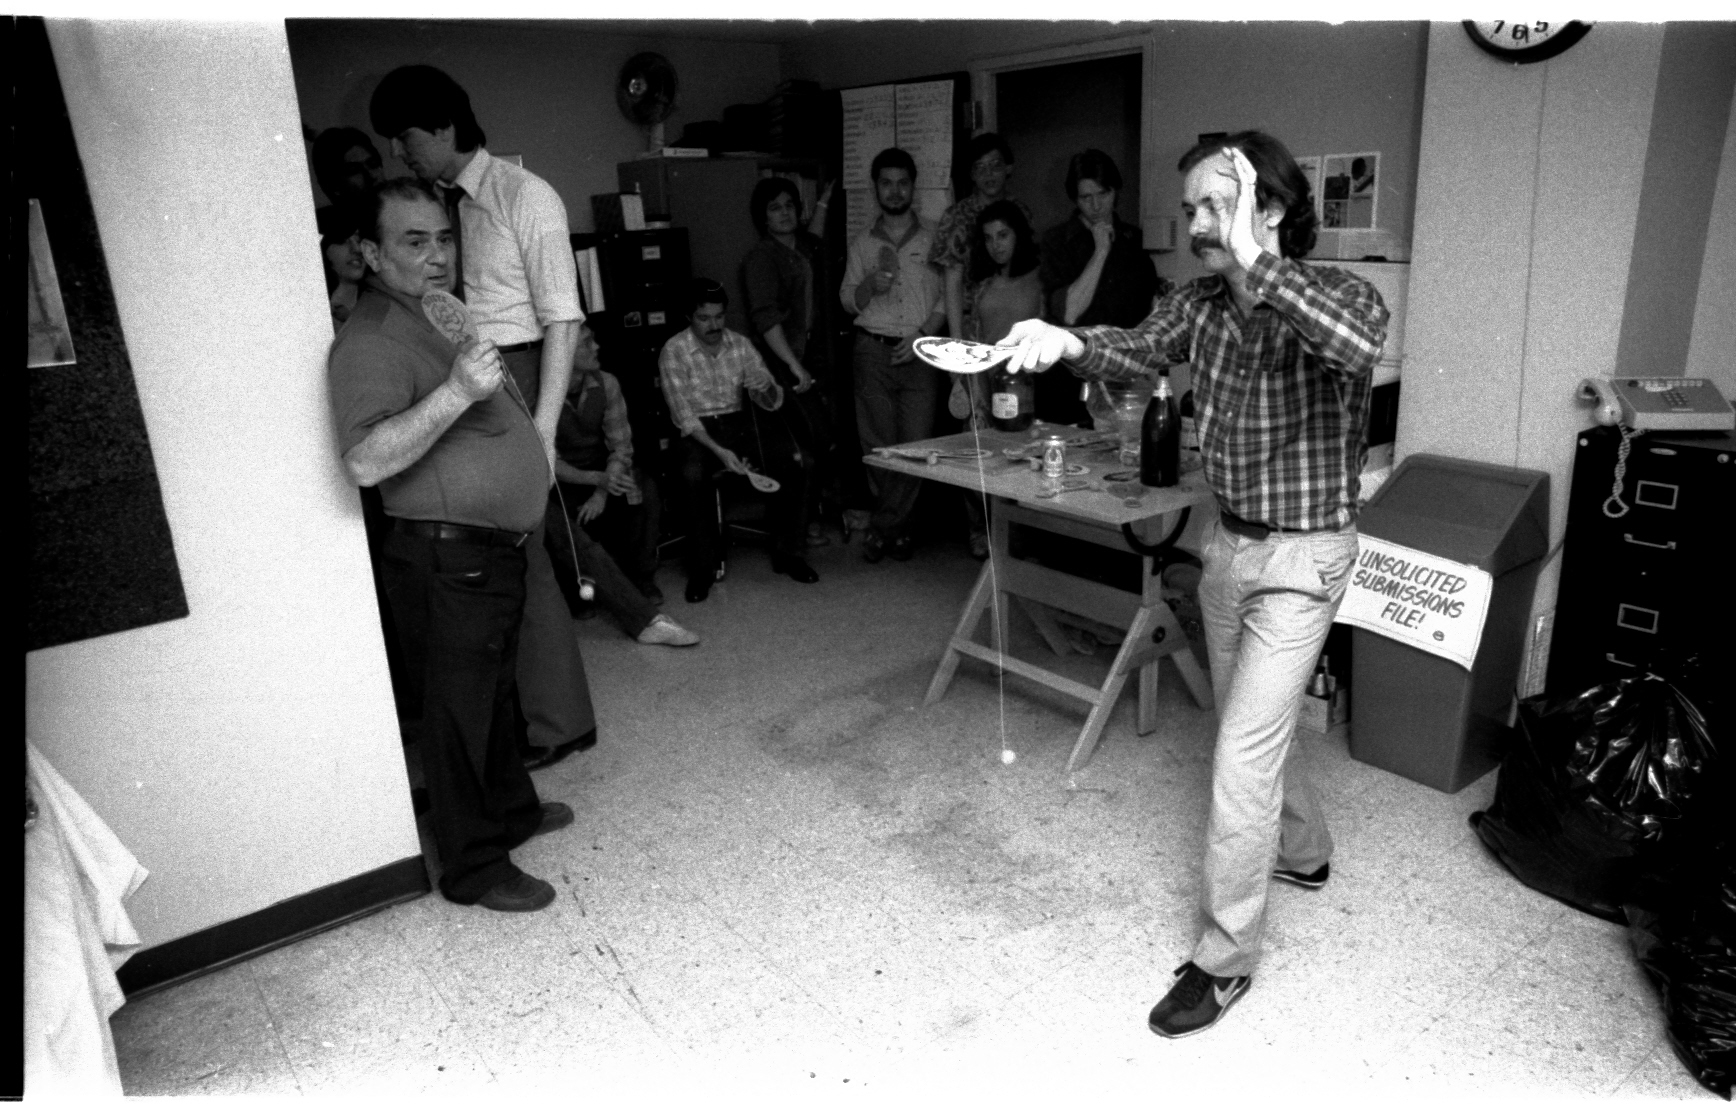 Mark Gruenwald, who really did practice, shows us how it's done! Danny can't believe his eyes. A dejected Shooter just leaves the room (to go to his office-- this whole area is his ante-room).